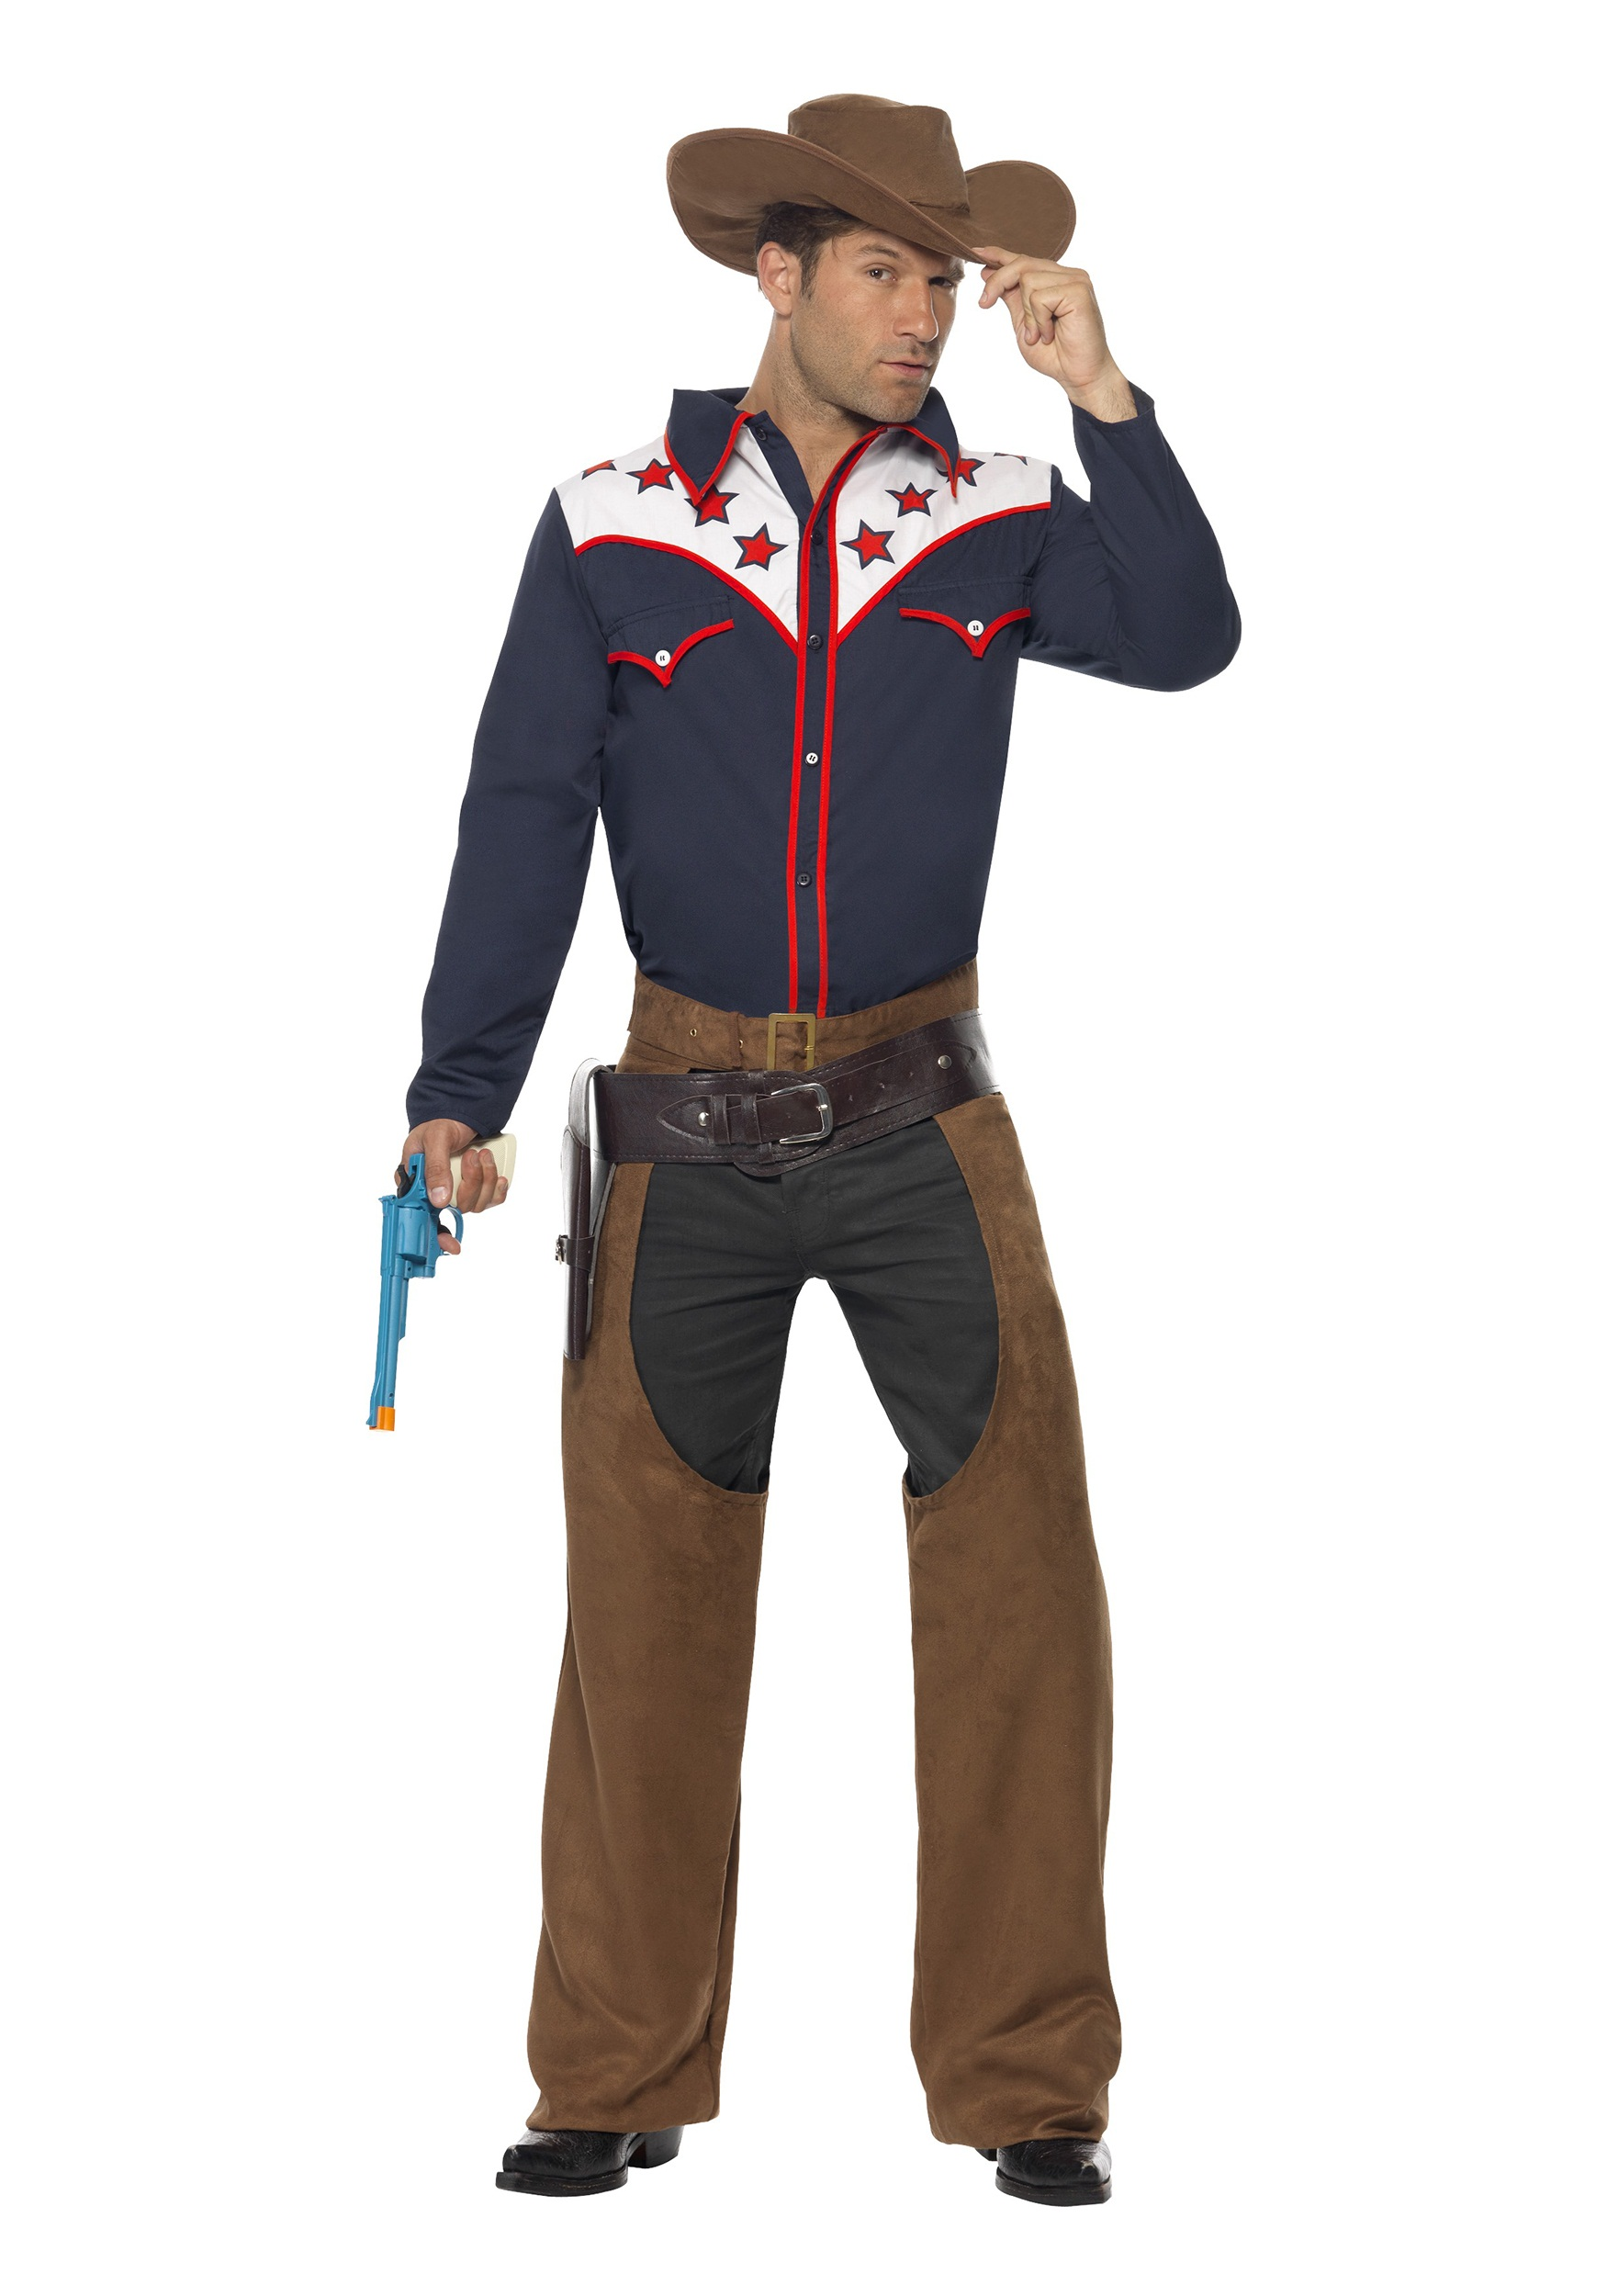 Guy Cowboy Costumes Men's Rodeo Cowboy Costume